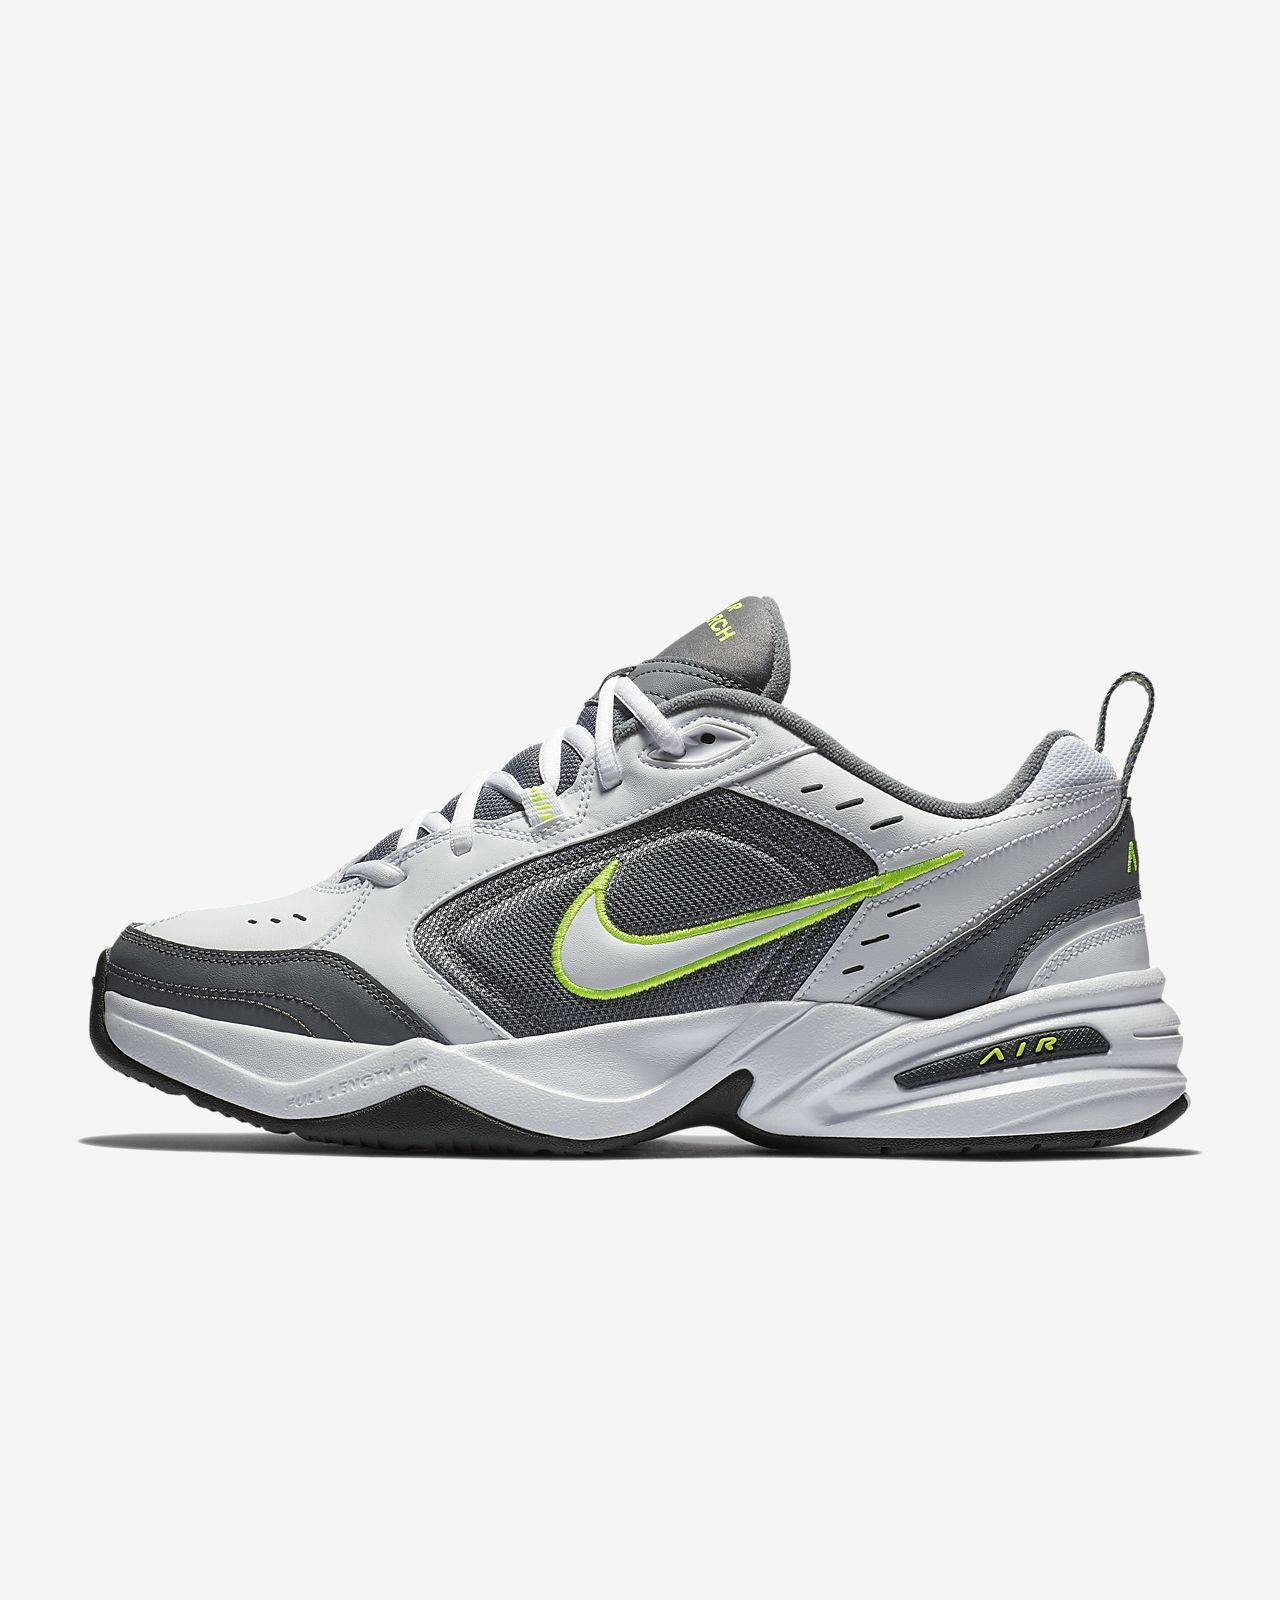 cheap for discount b7e15 94f55 Low Resolution Livsstils- och gymsko Nike Air Monarch IV Livsstils- och  gymsko Nike Air Monarch IV